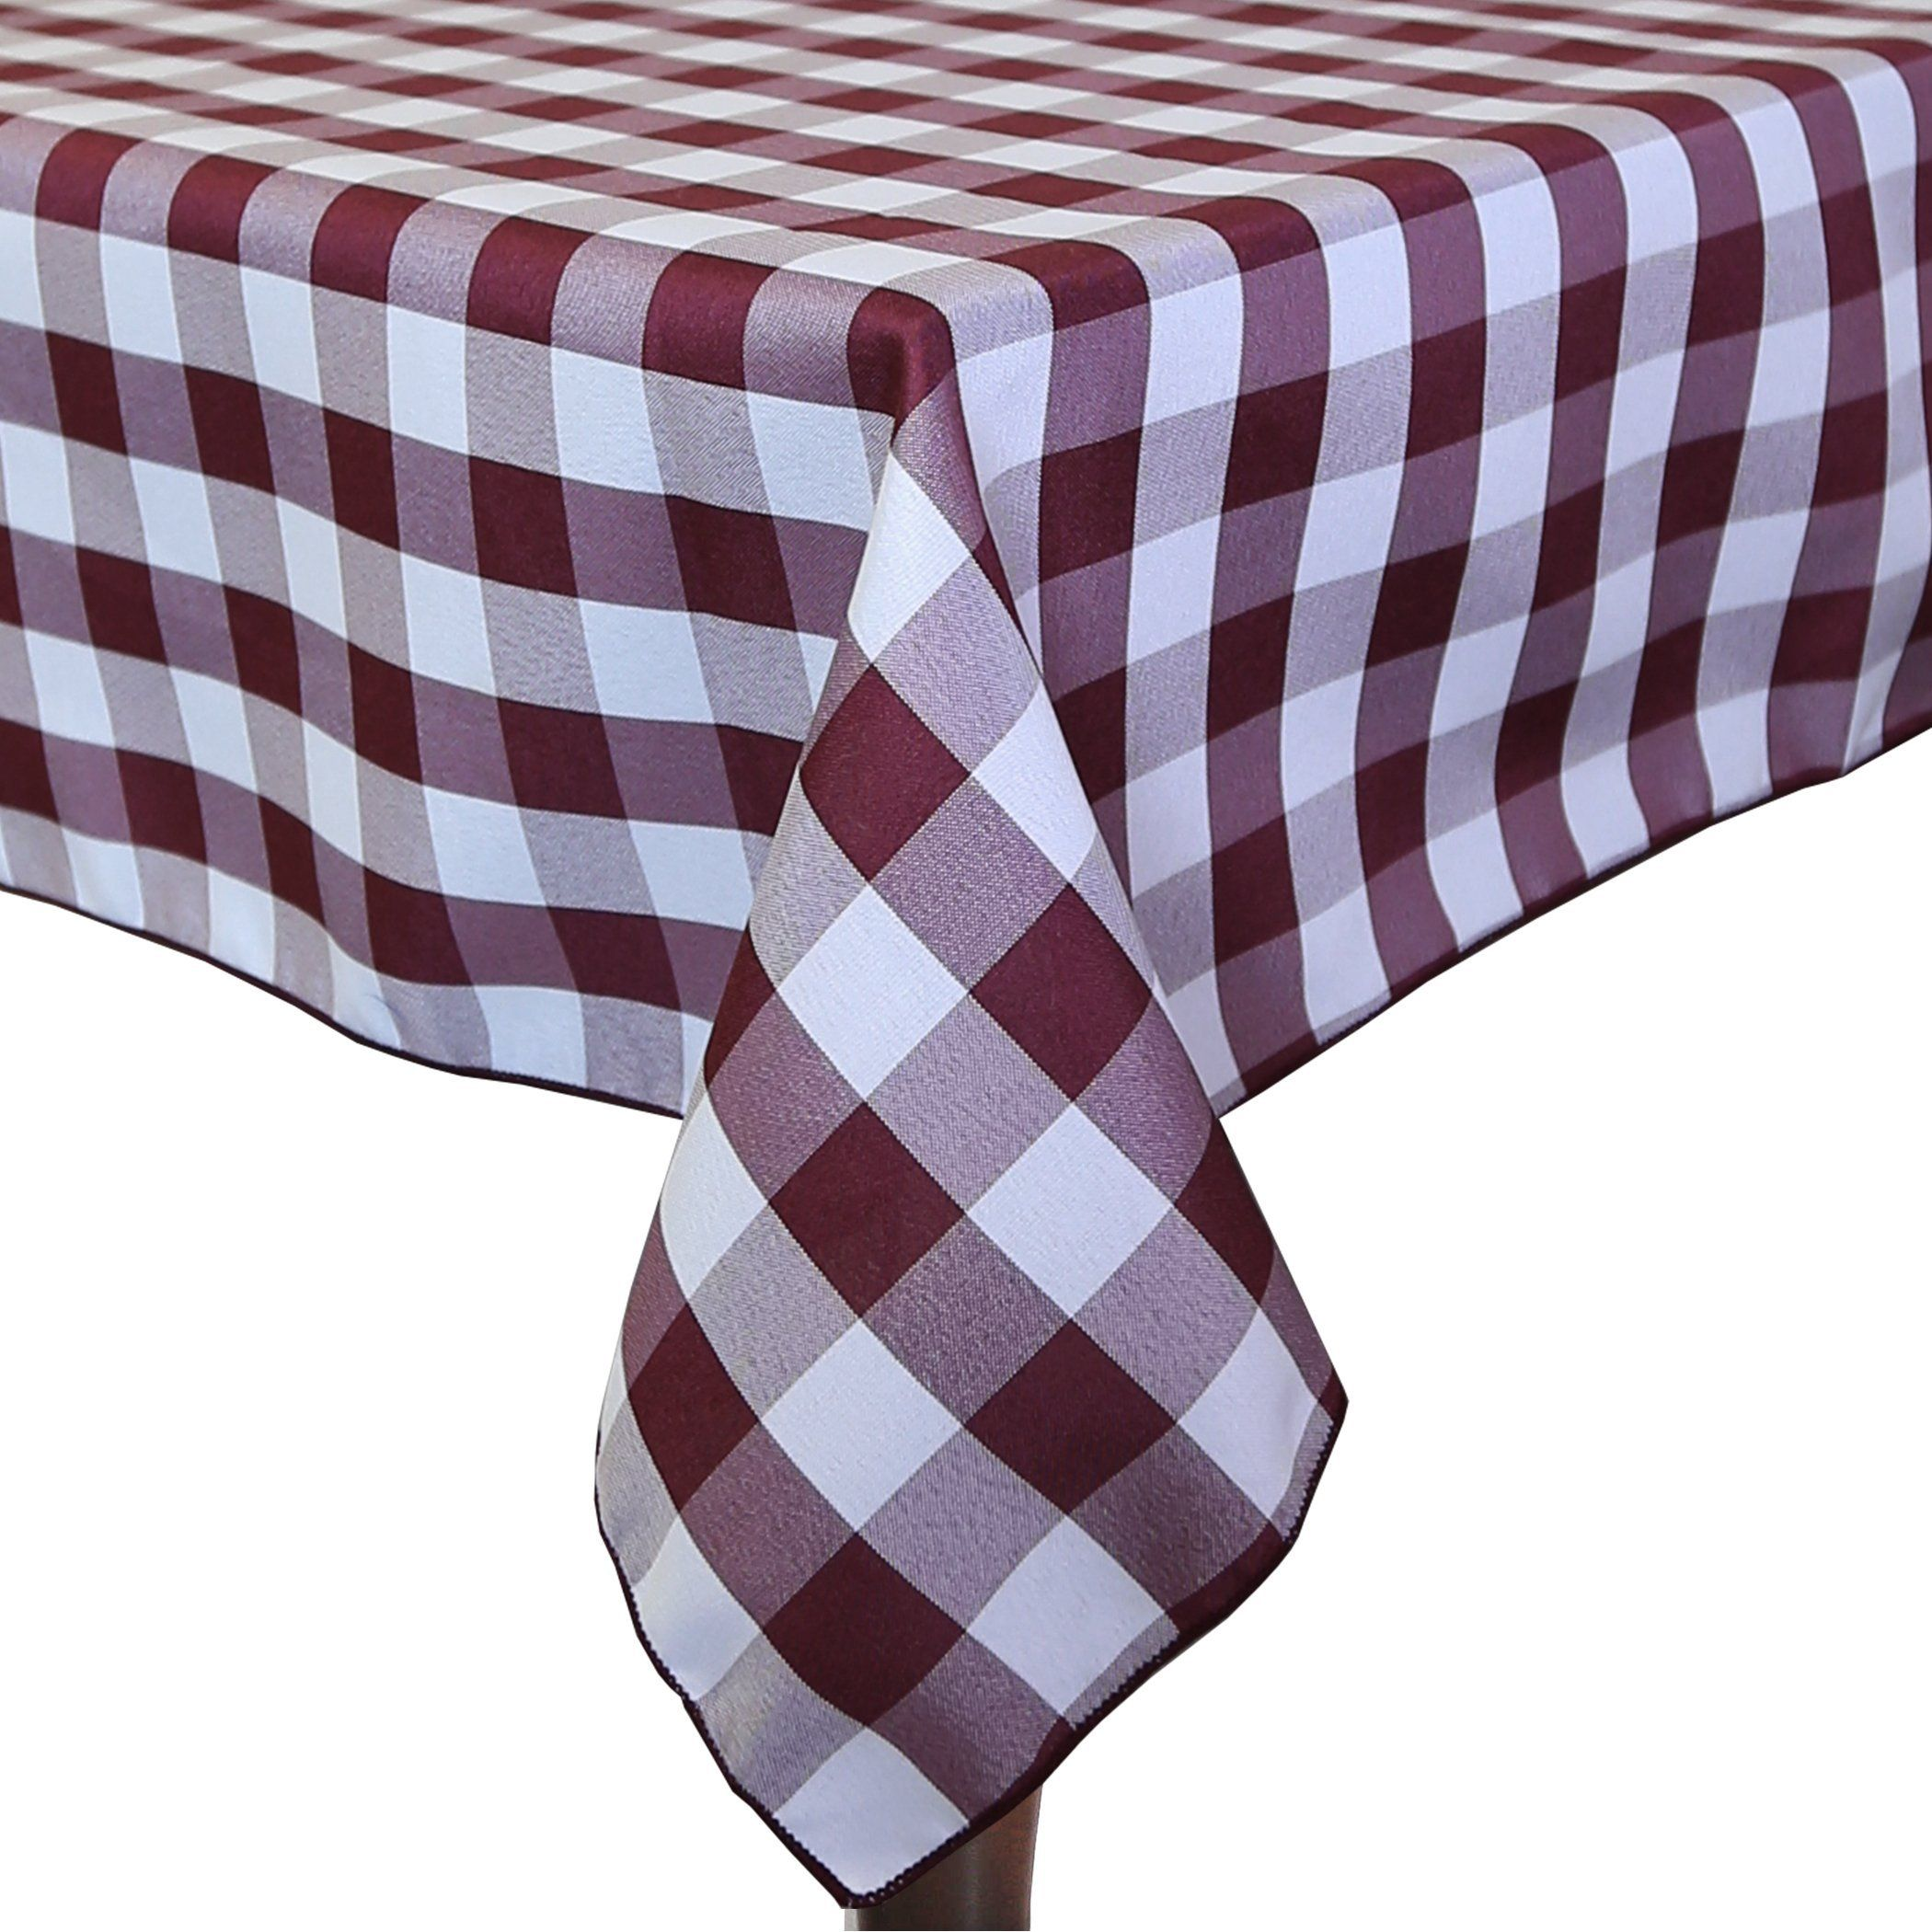 Ultimate Textile 5 Pack 54 X 54 Inch Square Polyester Gingham Checkered Tablecloth For Picnic Outdoor Or Ultimate Textile Checkered Tablecloth Table Cloth